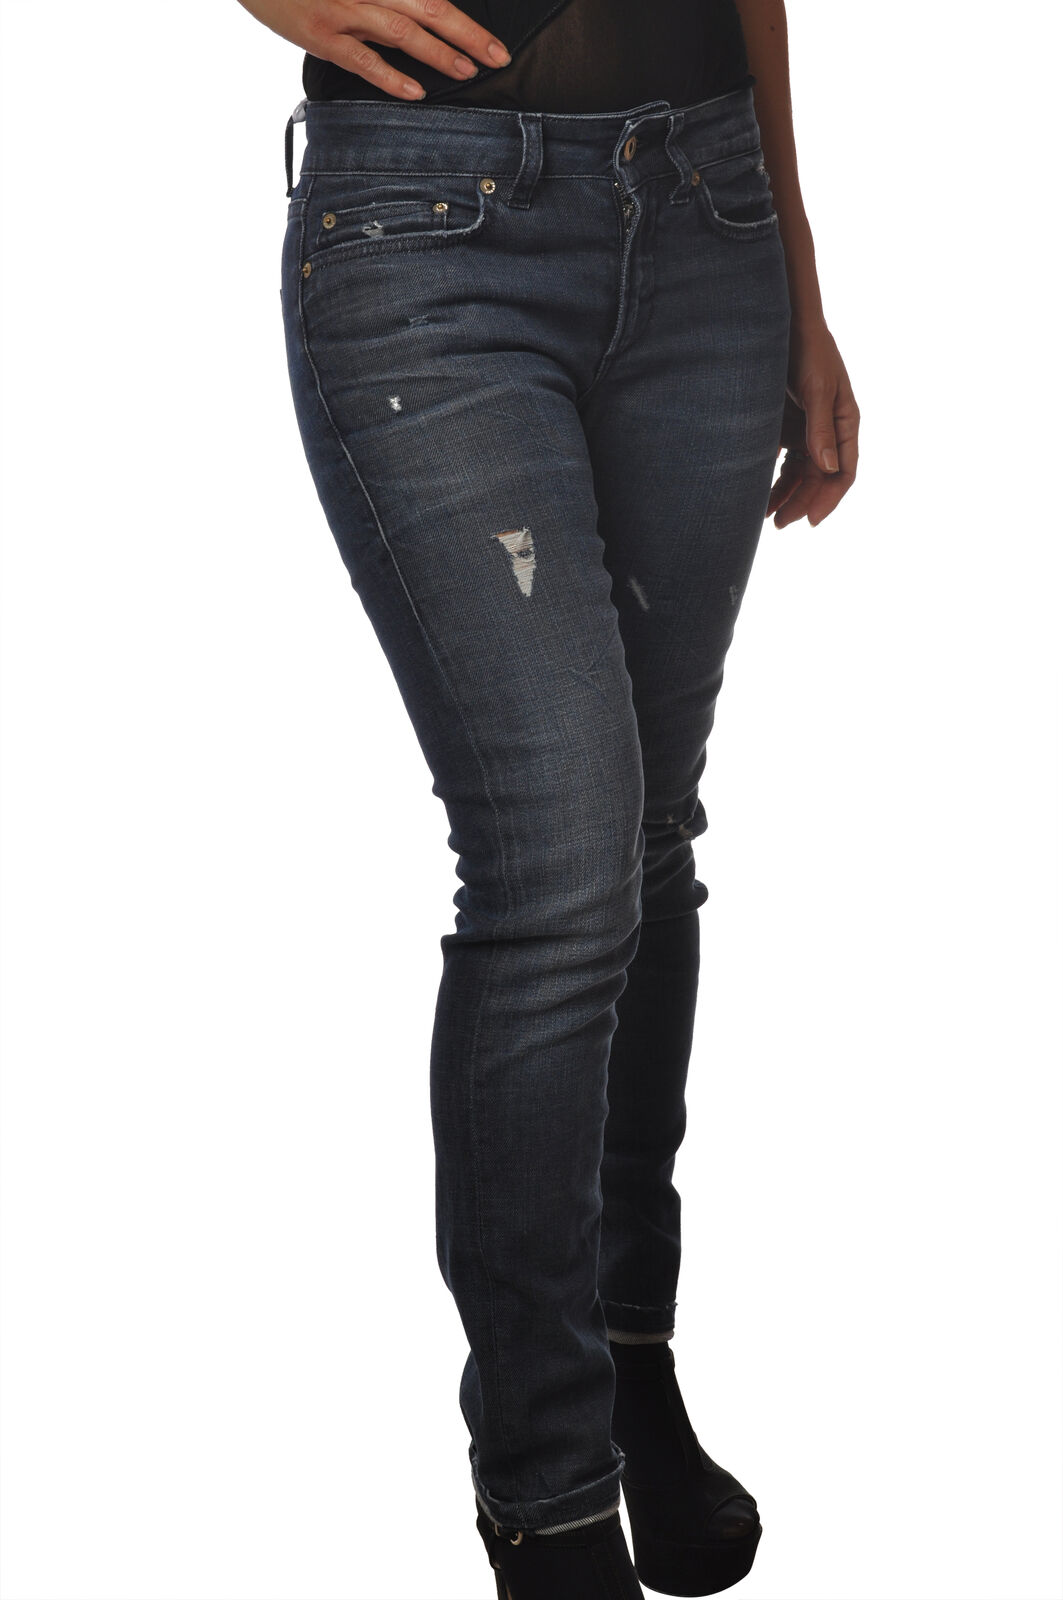 Dondup - Jeans-Pants-slim fit - Woman - Denim - 5443409C191538